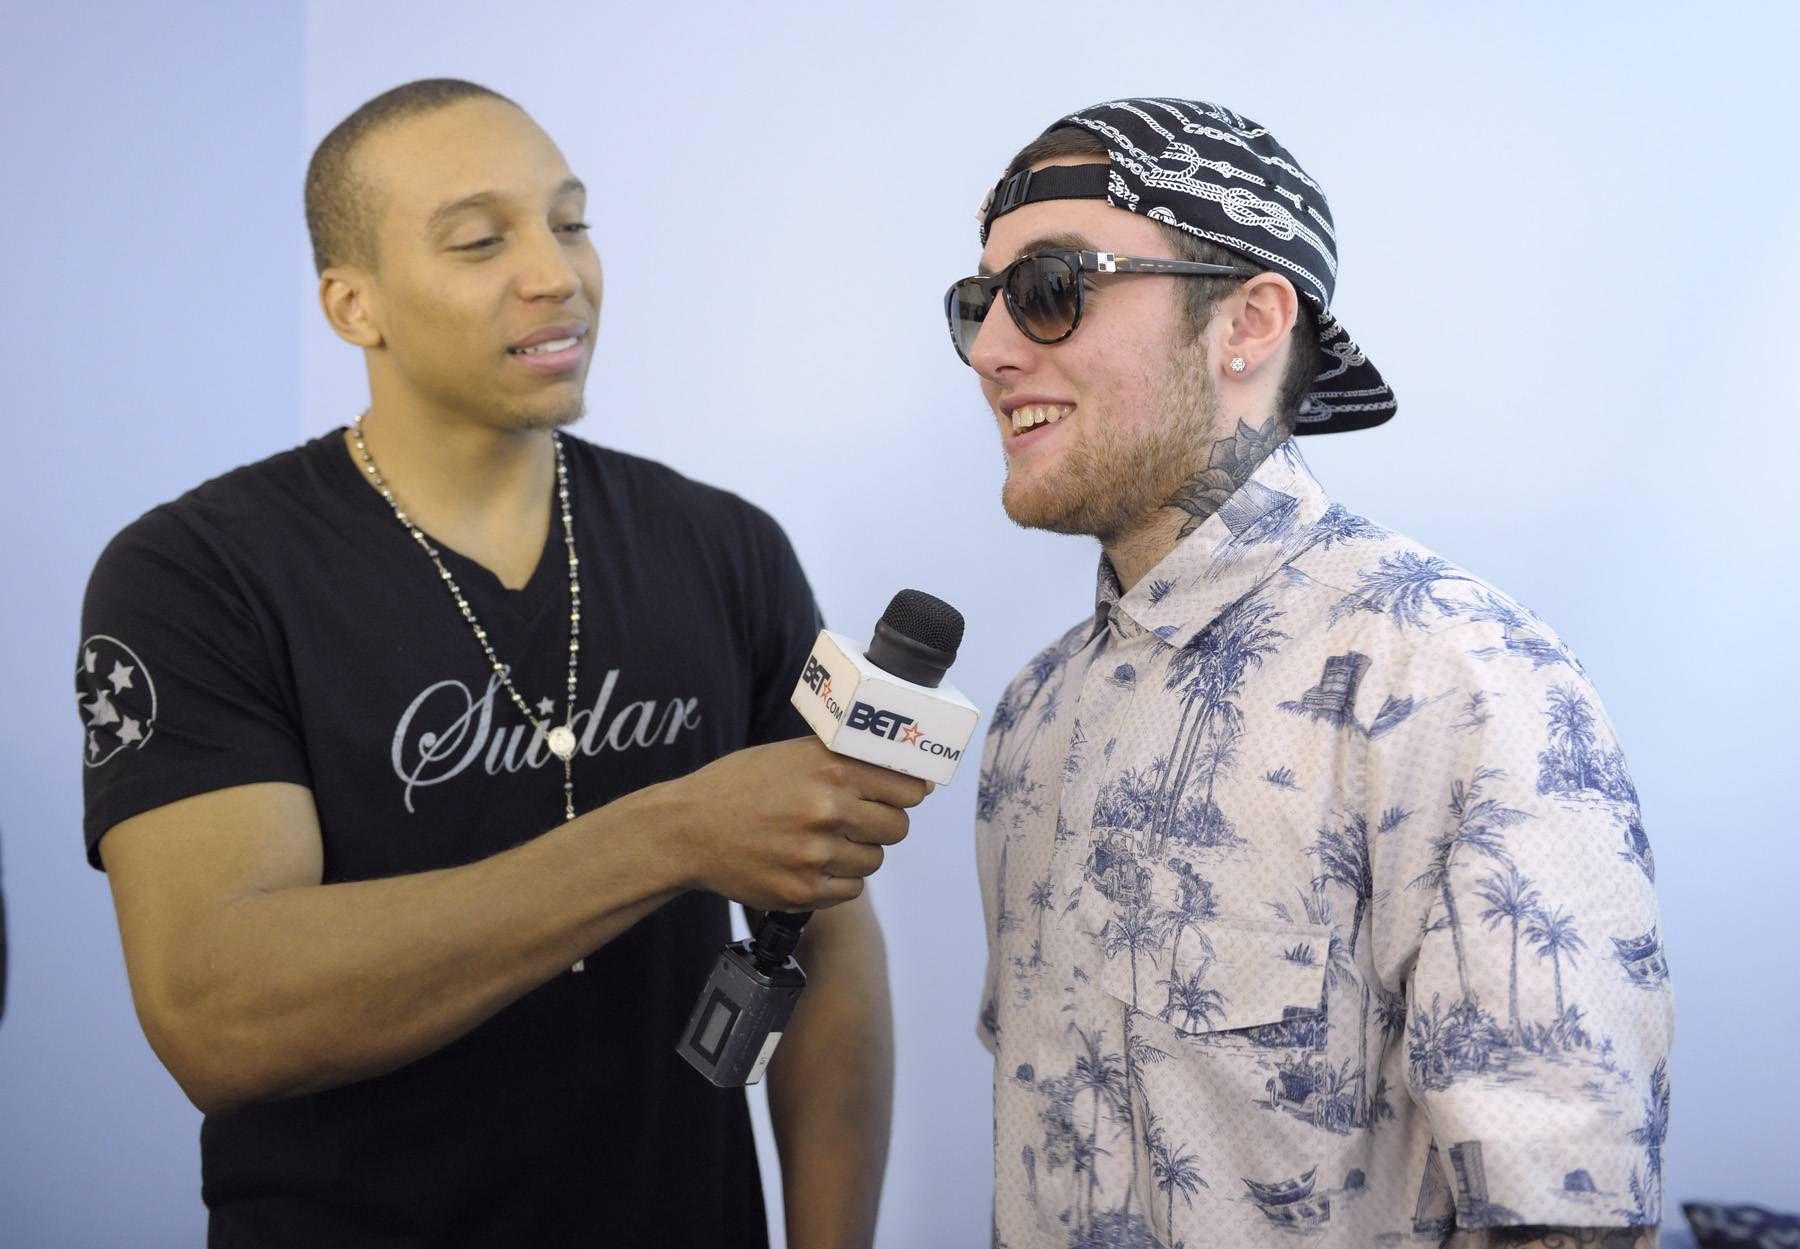 Whoa - Tony Anderson of bet.com interviews Mac Miller before the show in the green room at 106 & Park, April 26, 2012. (Photo: John Ricard / BET)